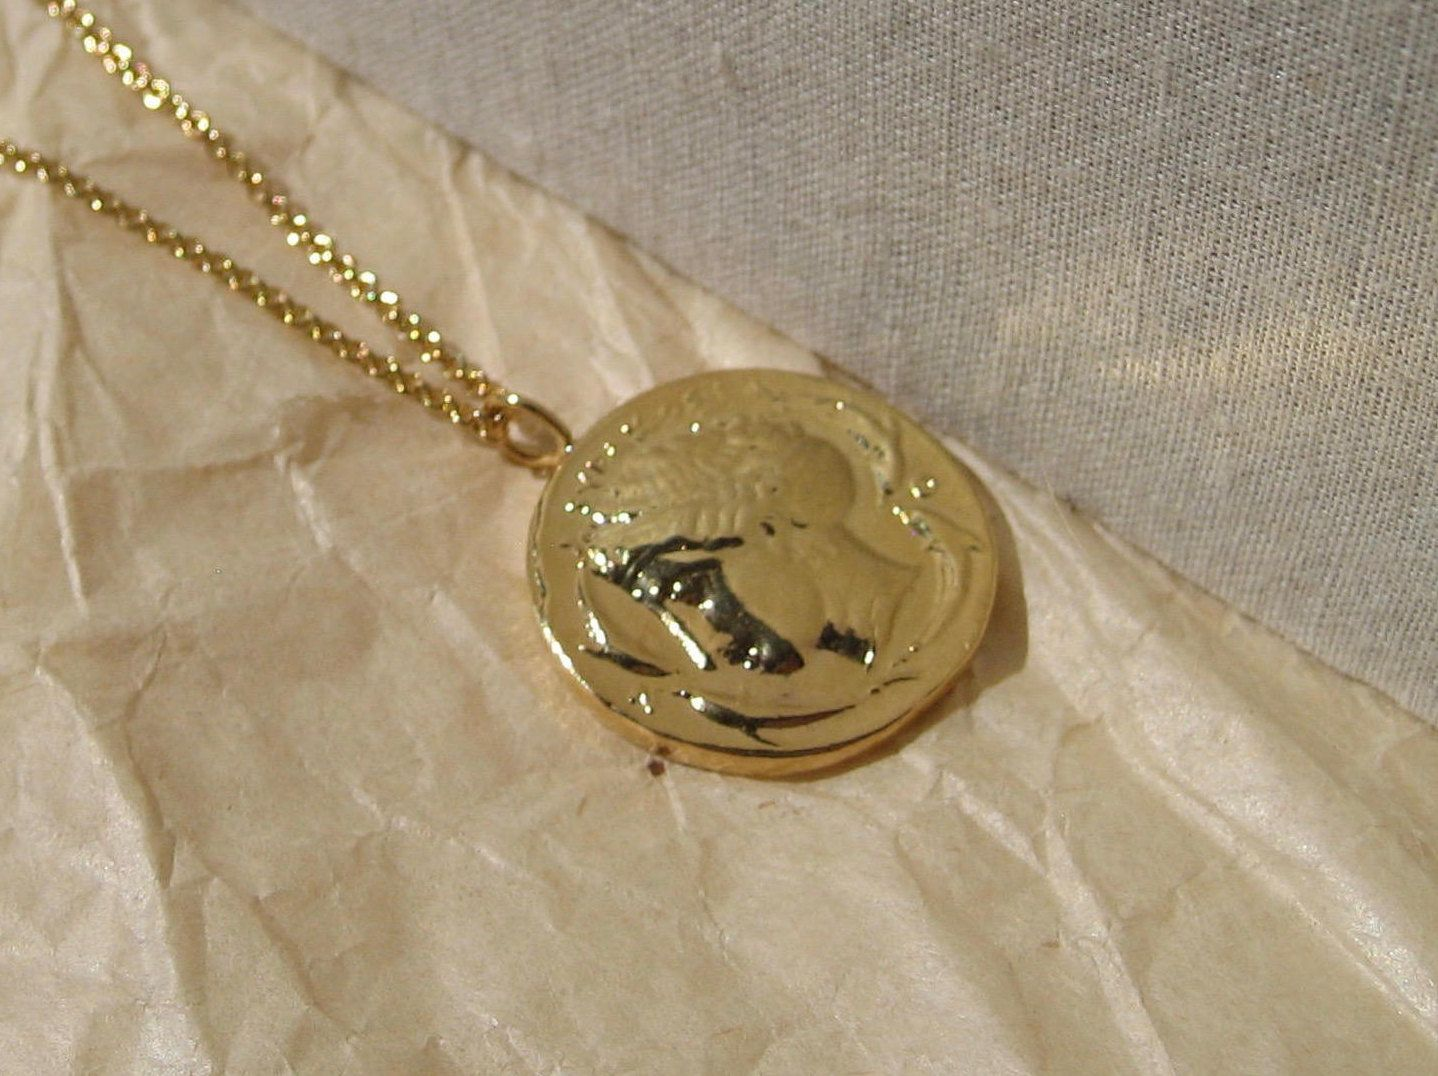 lucy necklace lyst williams jewelry medallion view gold in metallic fullscreen missoma octagon x